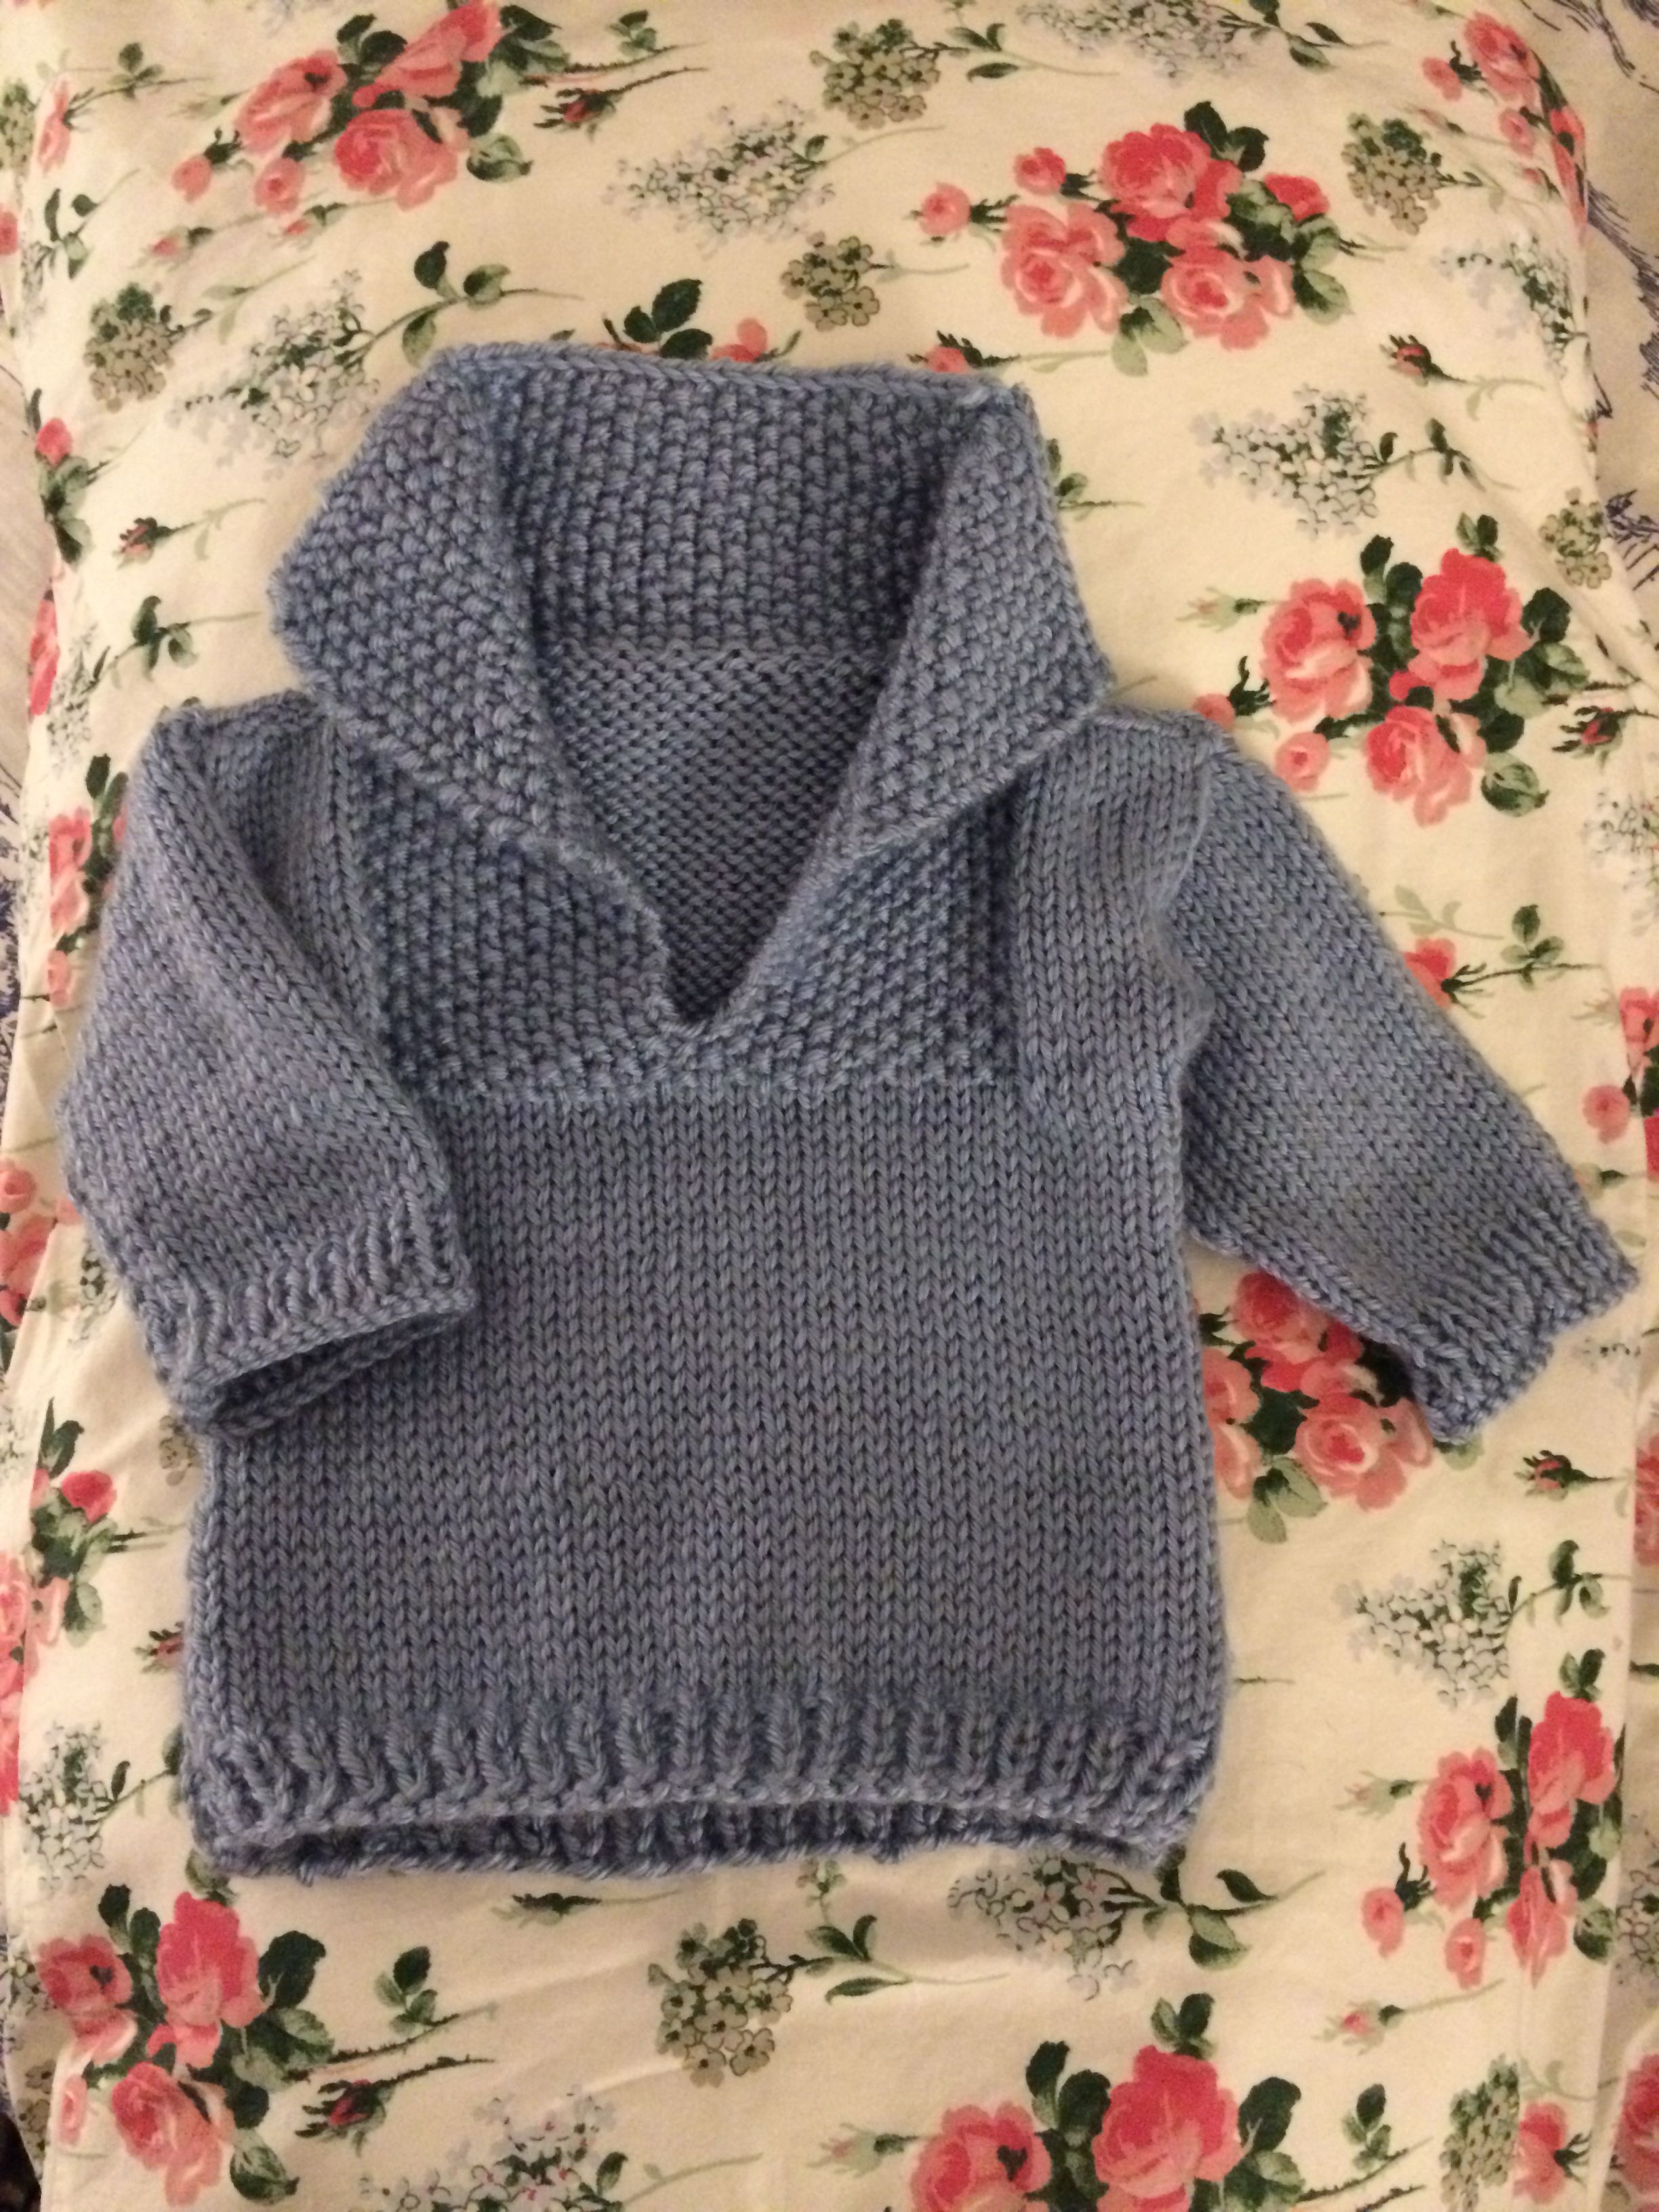 Easy knit baby sweater this is for chest size 22 and 26 inch easy knit baby sweater this is for chest size 22 and 26 inch baby free knittingbaby boy knitting patterns bankloansurffo Images